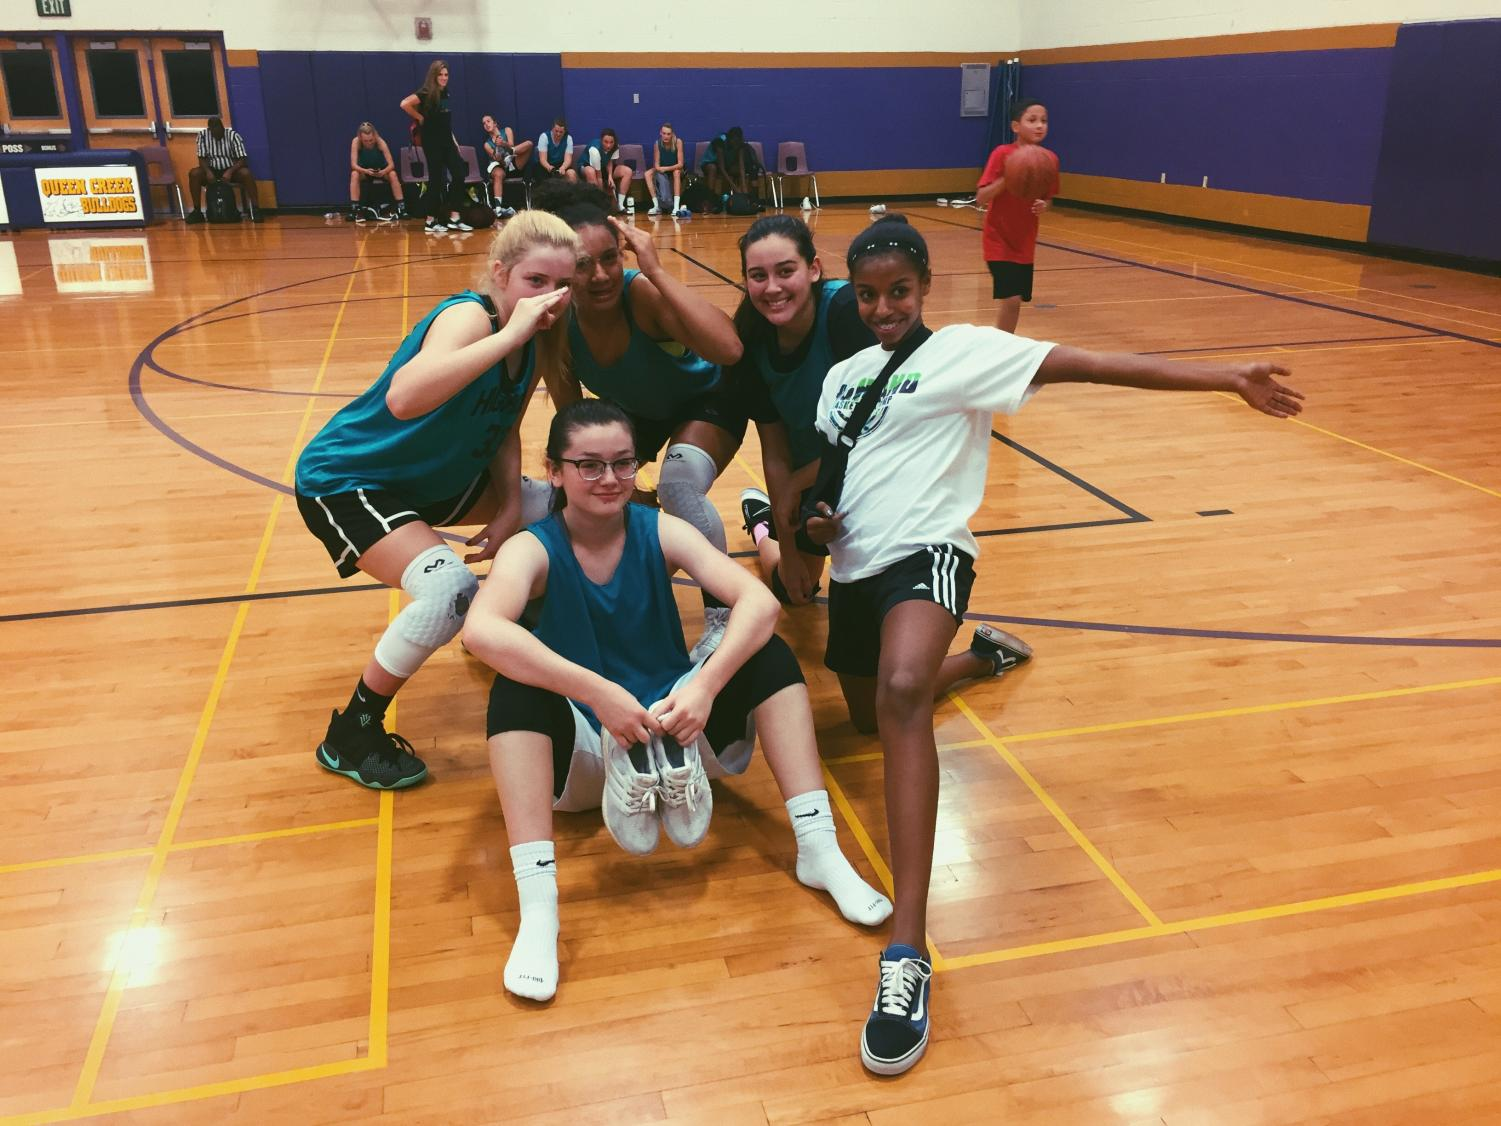 Melanie Gagnon, Aliyah Taveras, Tieyah Rosier, Norah Washington, Natalie Valles. Participate in a pre season game! After a two game win.